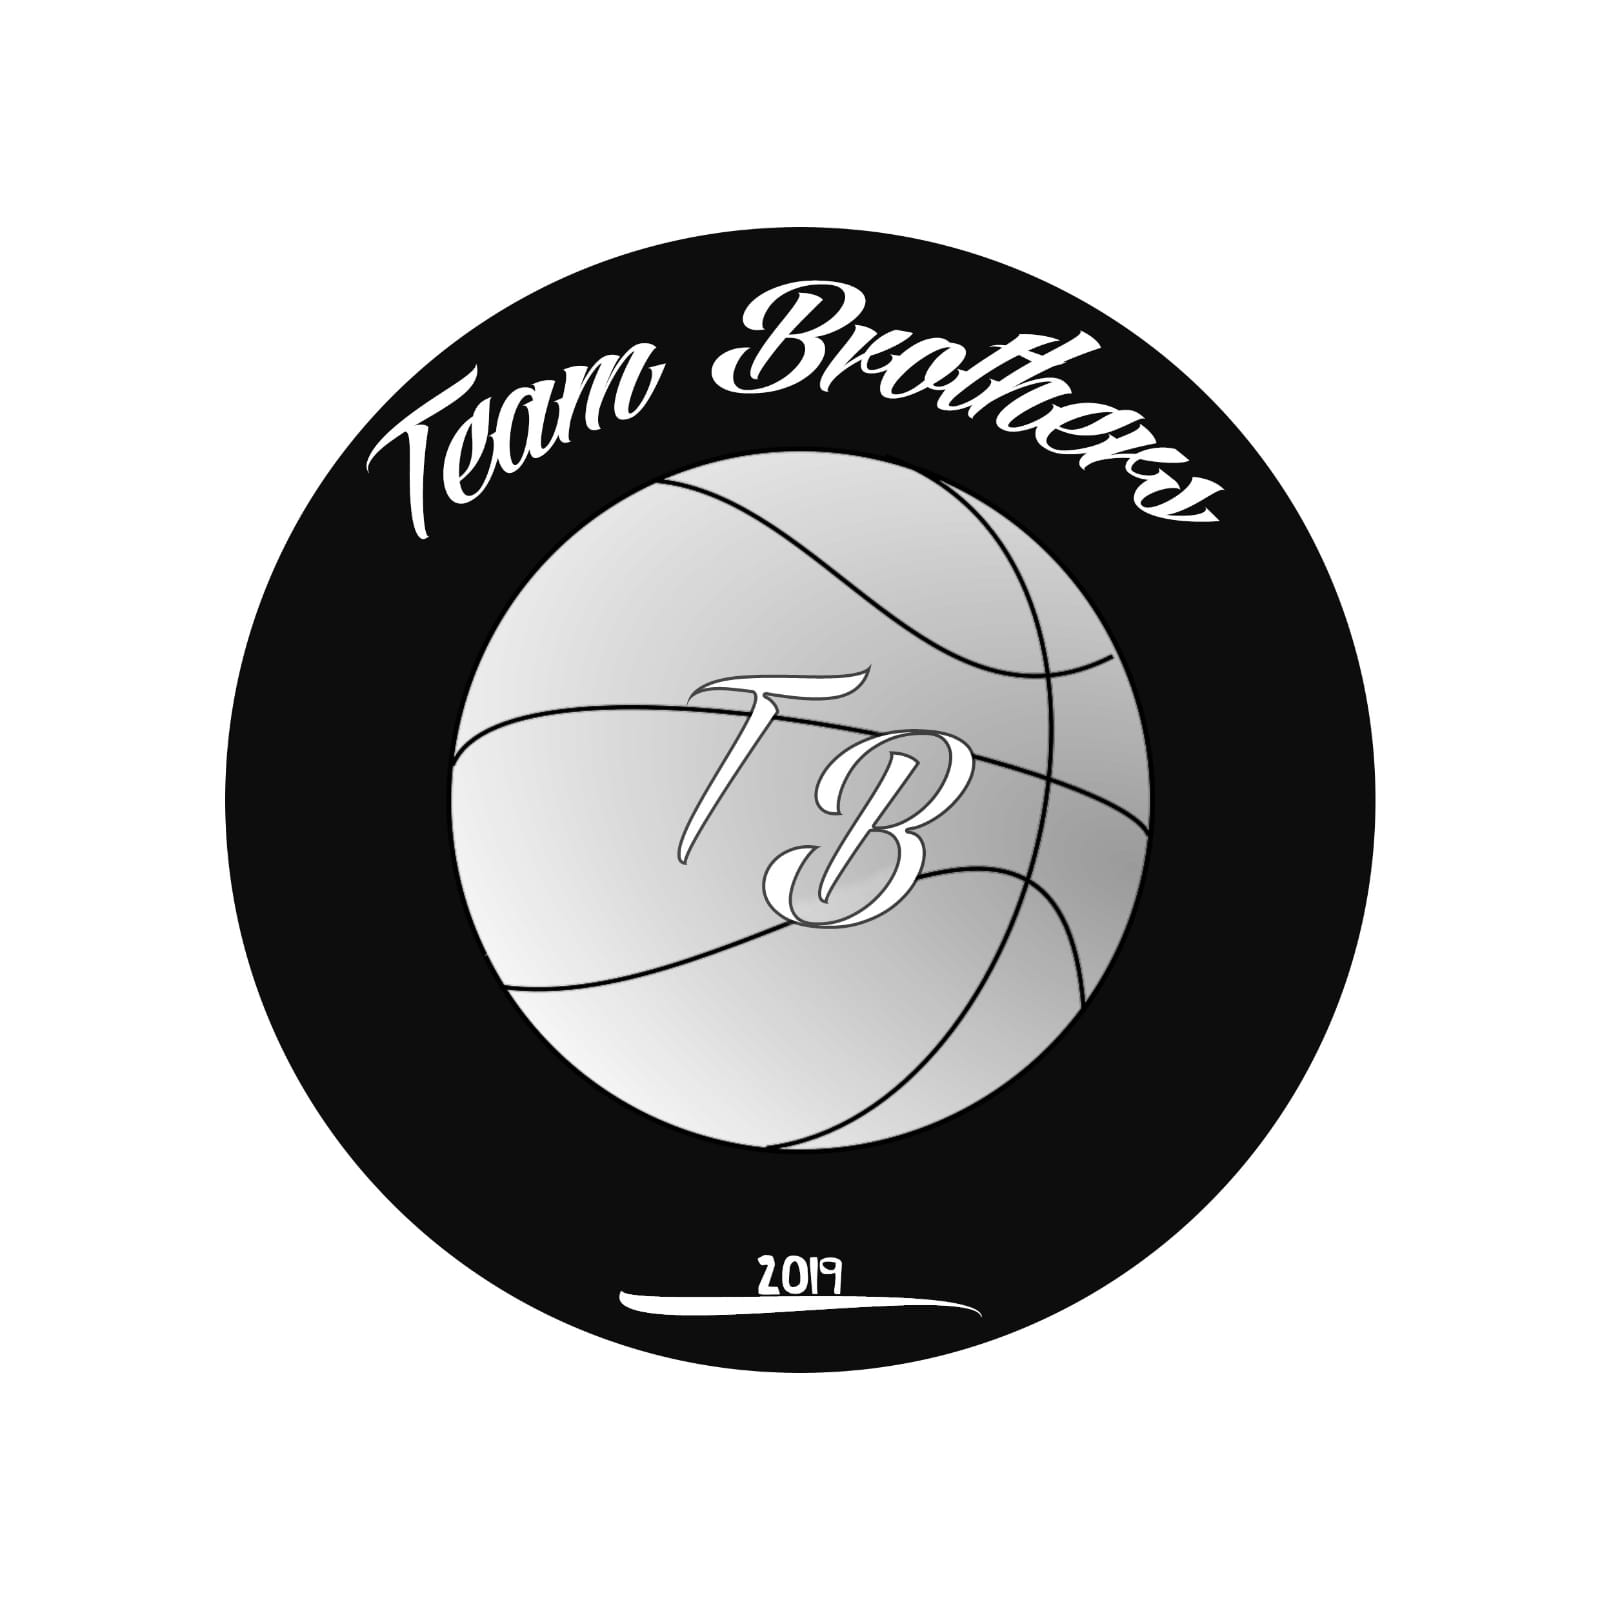 TEAM BROTHERS LOGO